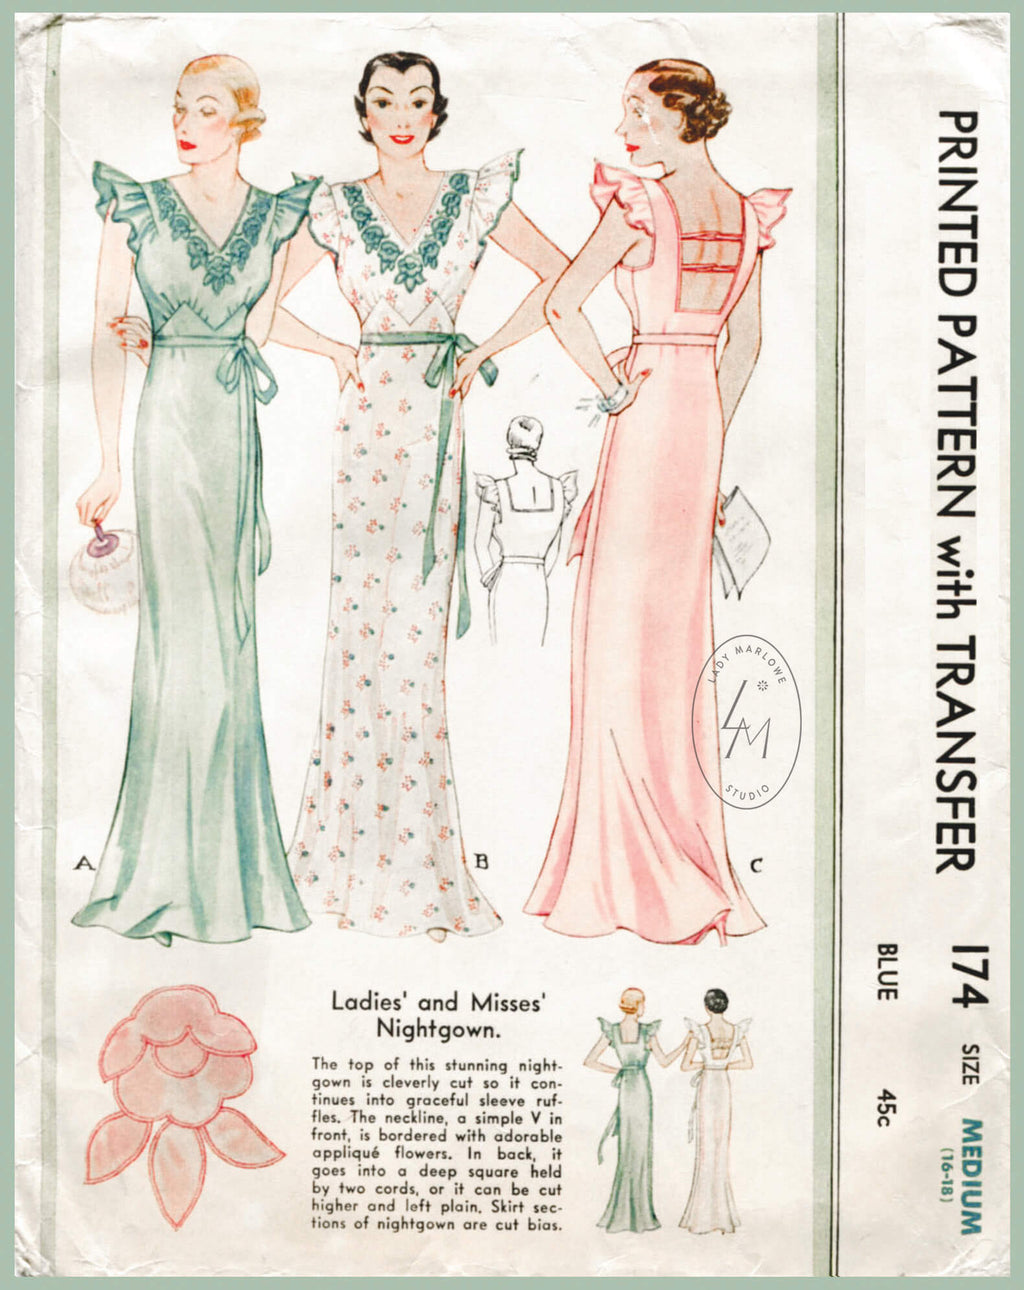 McCall 174 1930s vintage lingerie sewing pattern